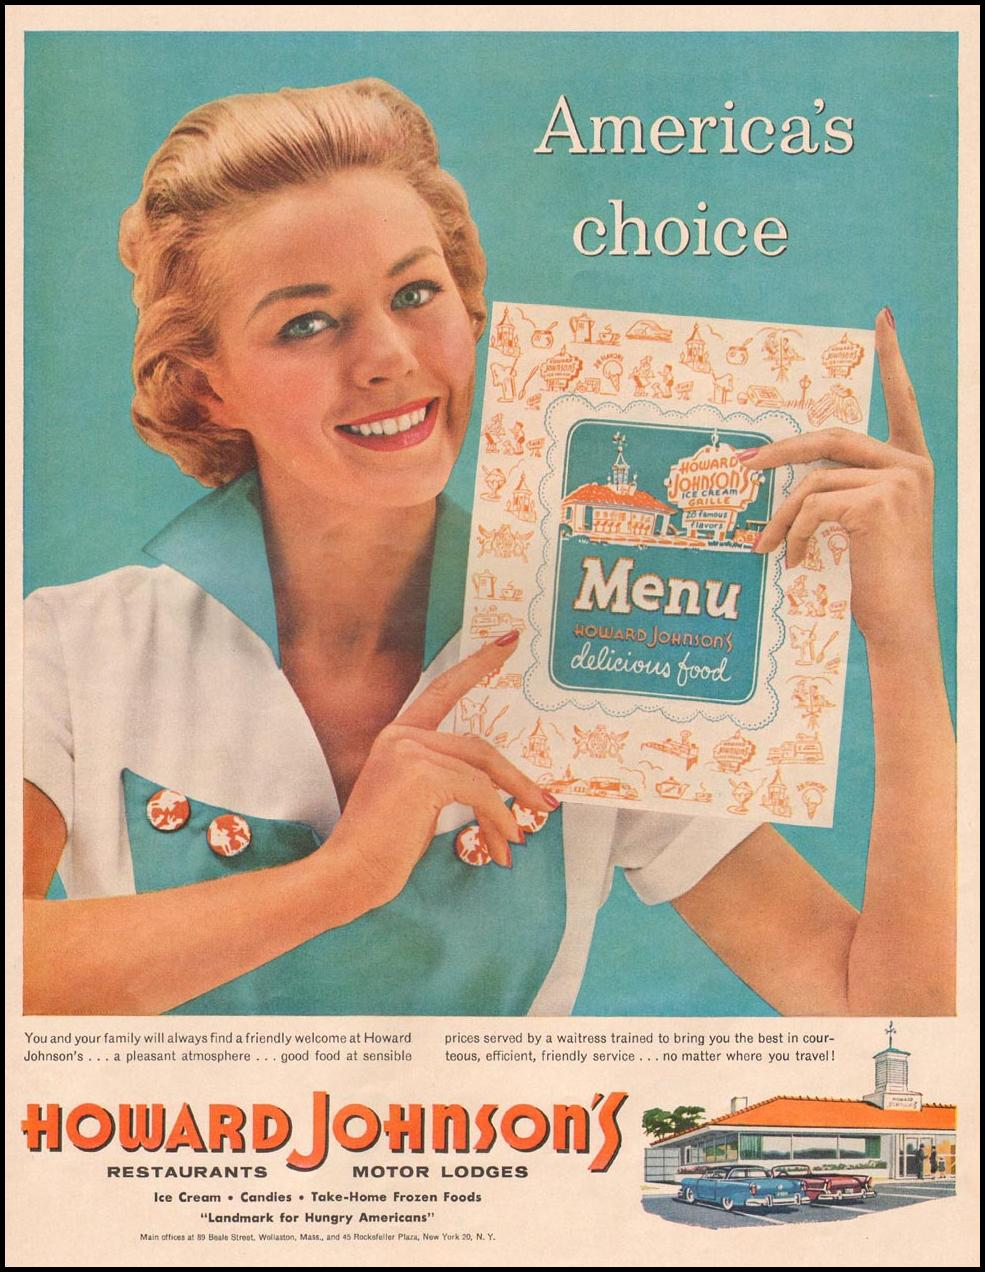 HOWARD JOHNSON'S RESTAURANTS AND MOTOR LODGES LIFE 09/15/1958